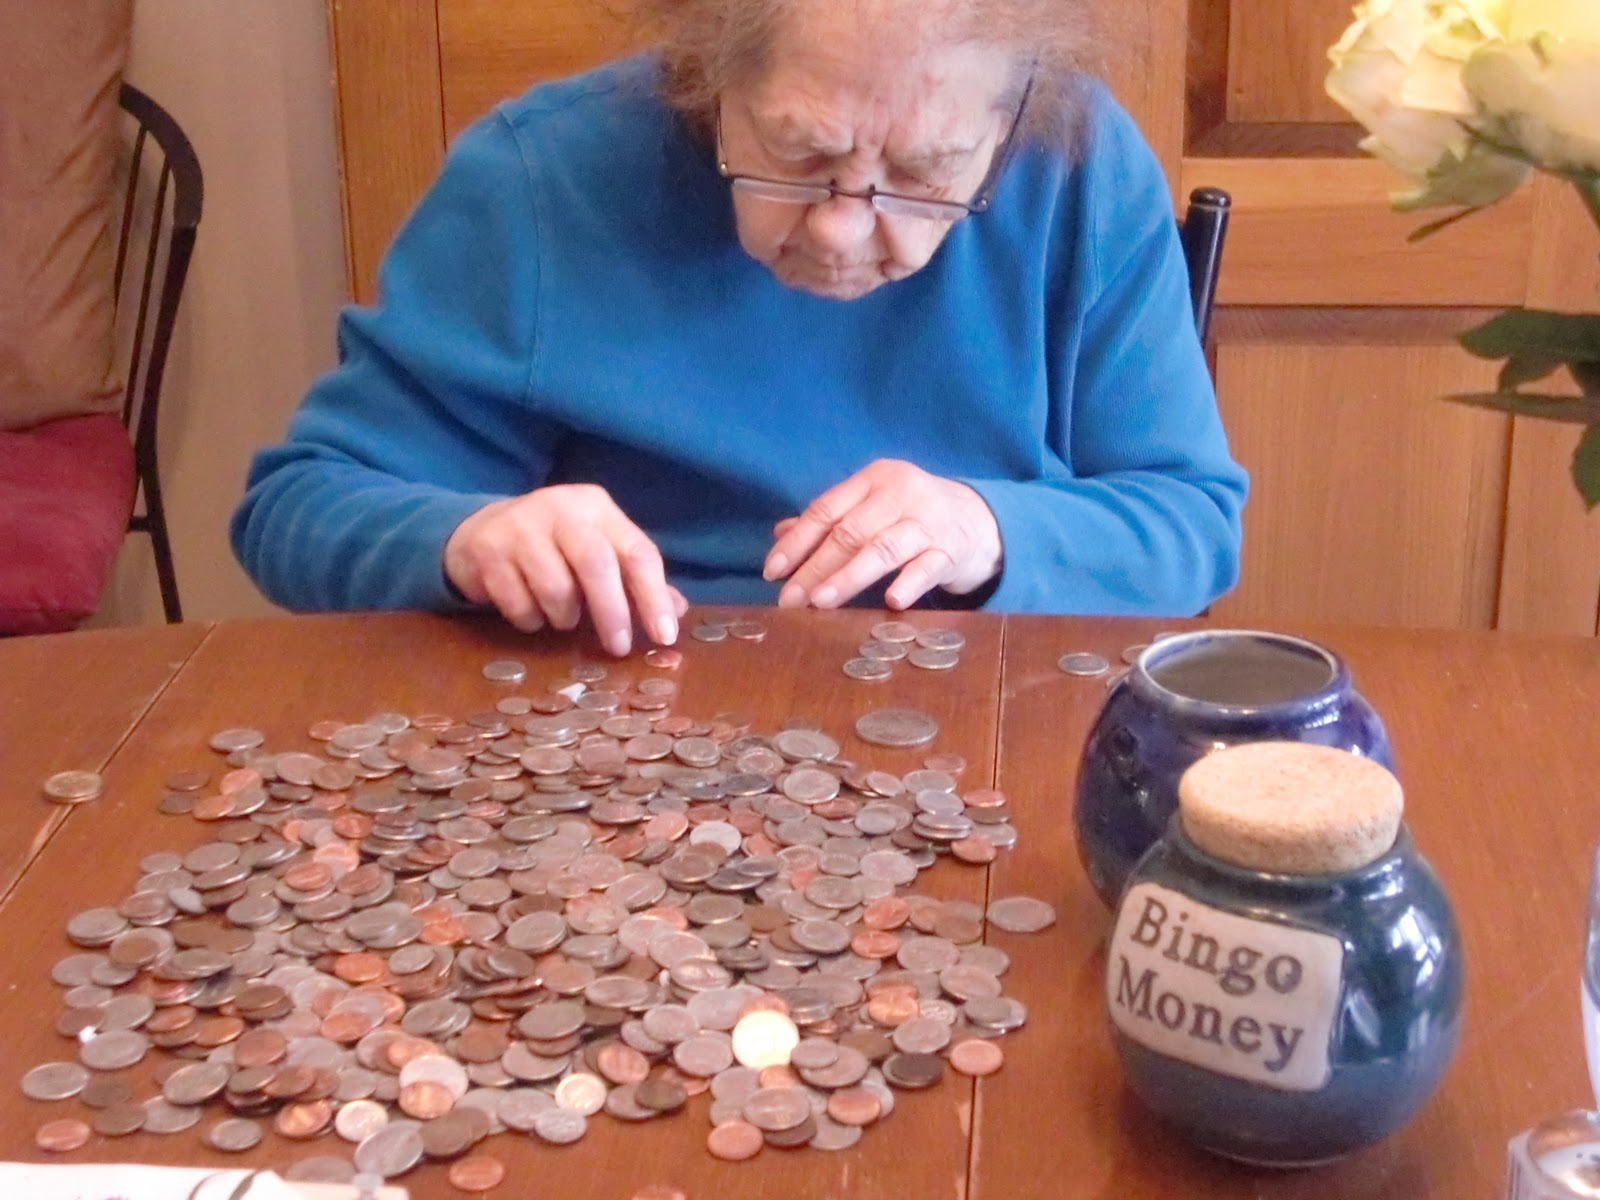 worksheet Counting Change bingo mom busy counting her money change jar